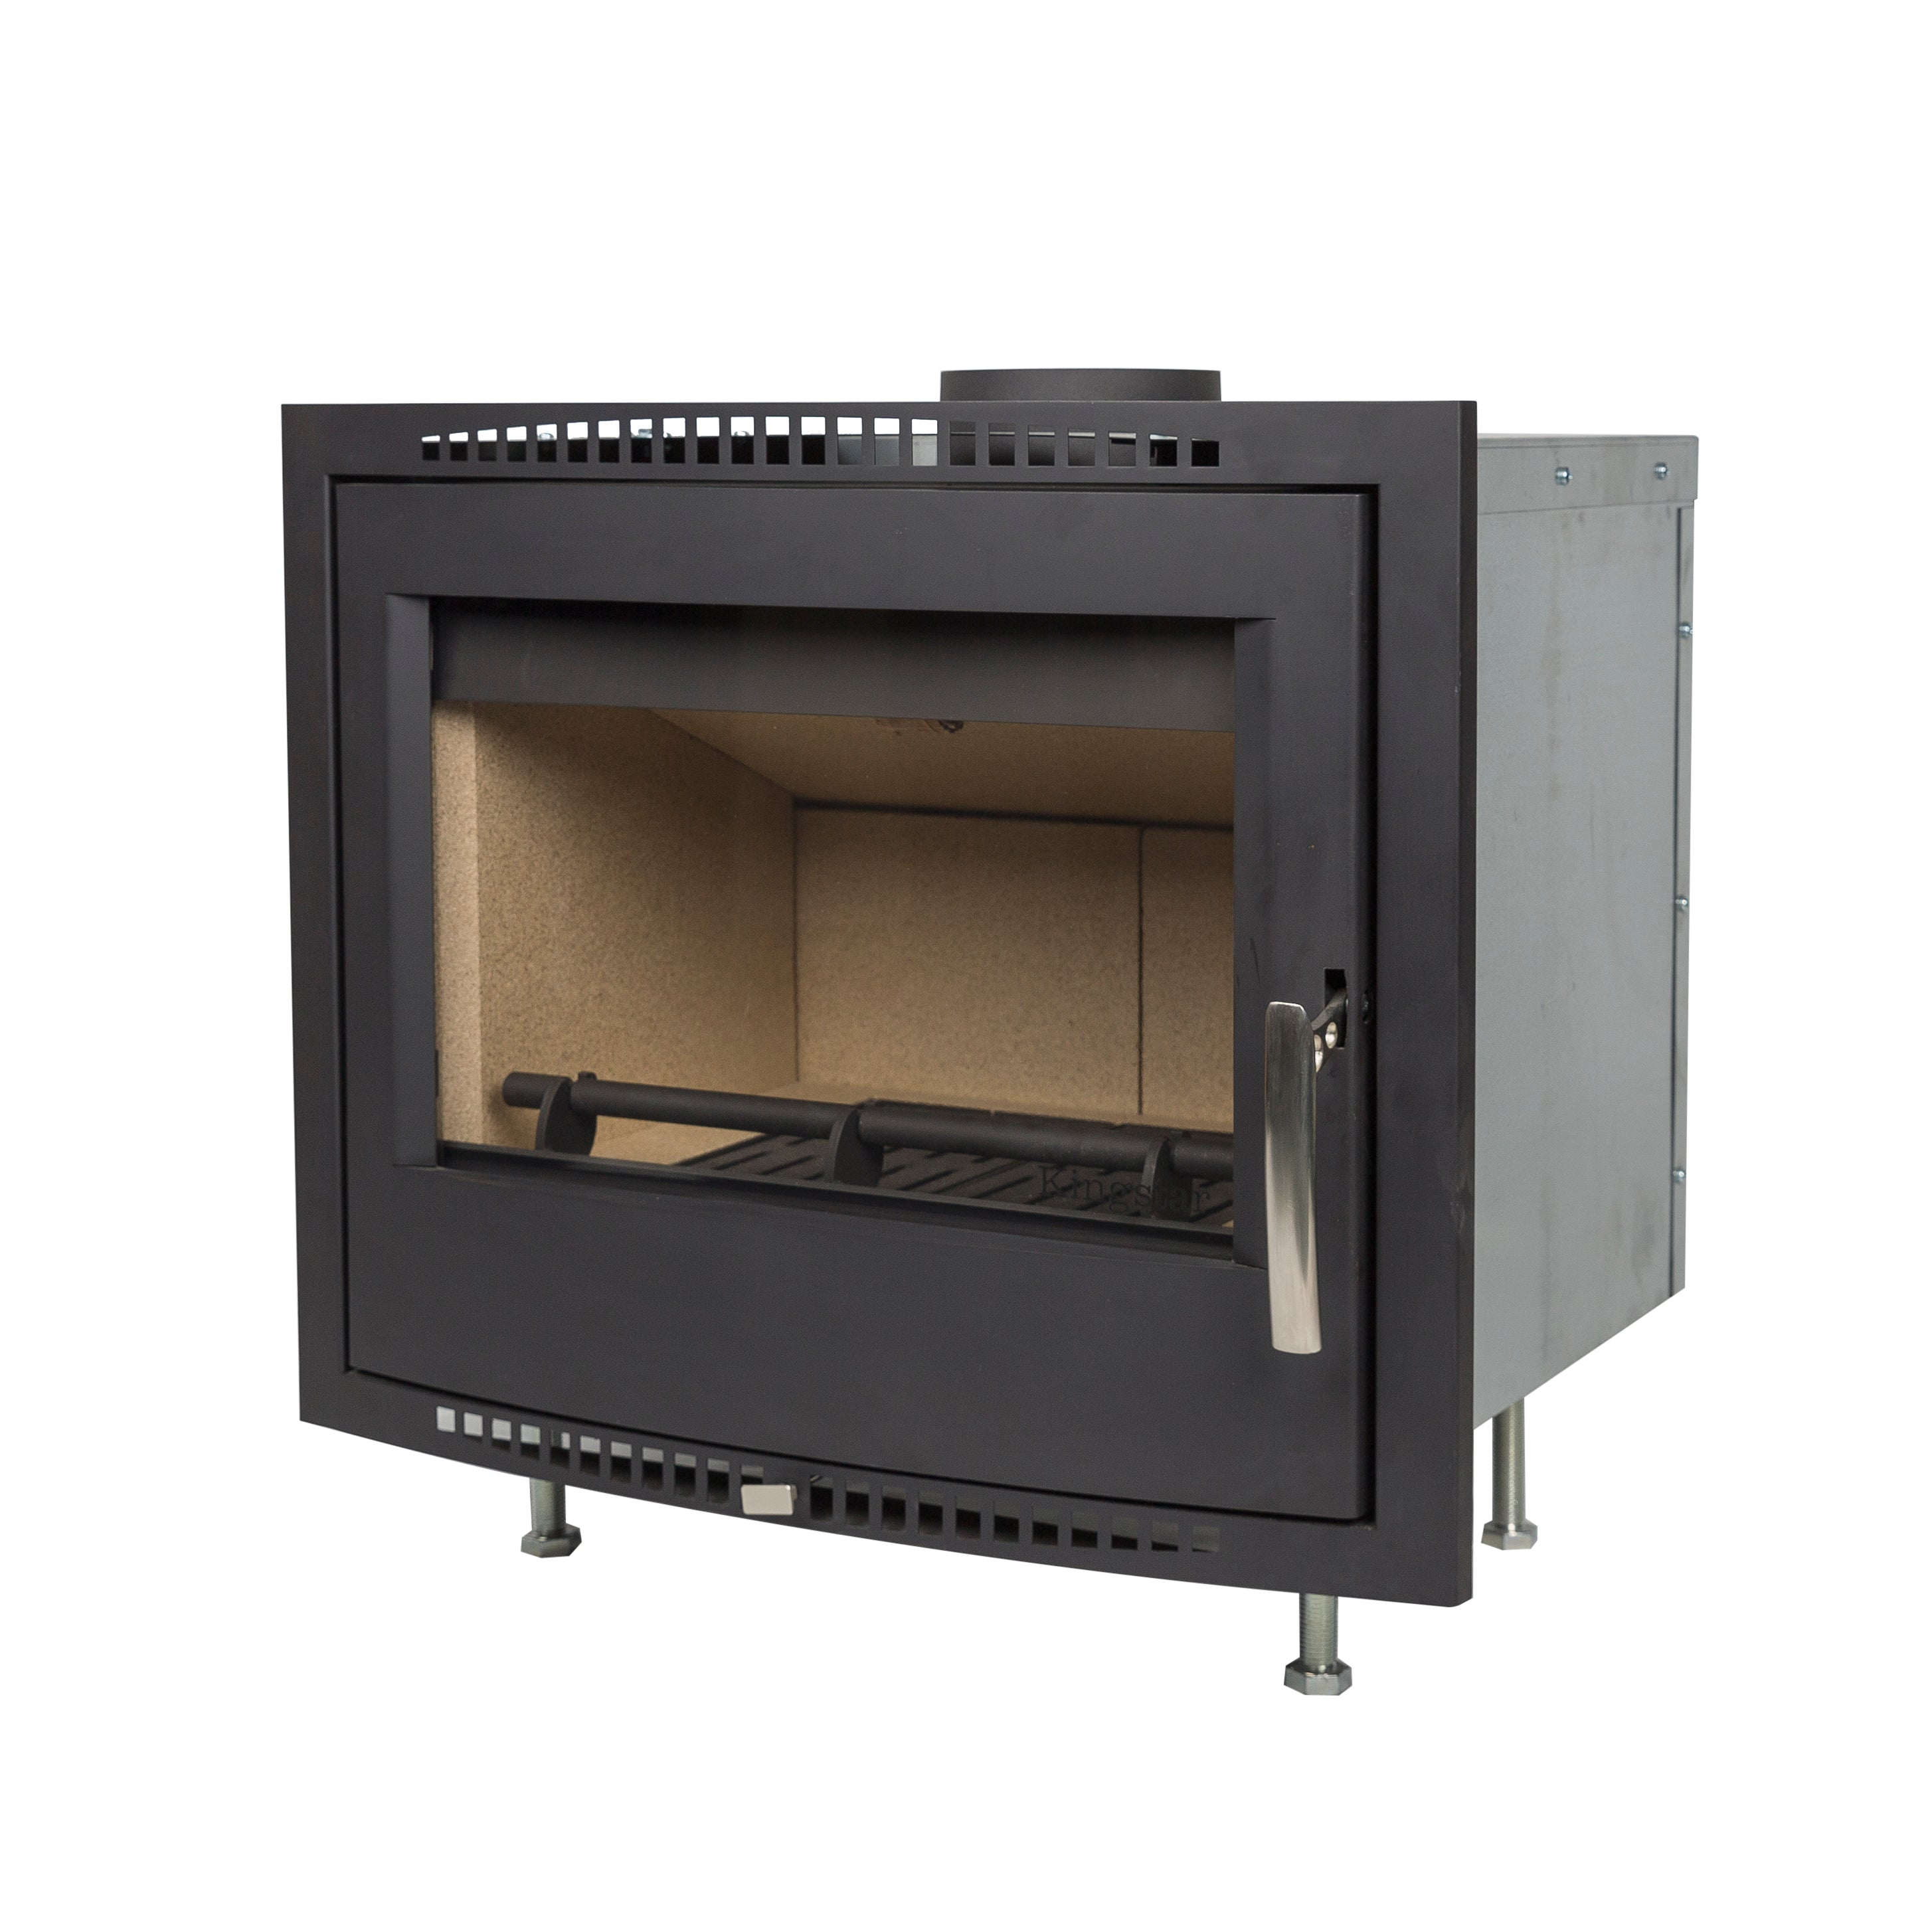 Shannon Passive Eco Stove shown with external air, air ducting and modern design -ideal for a passive house.